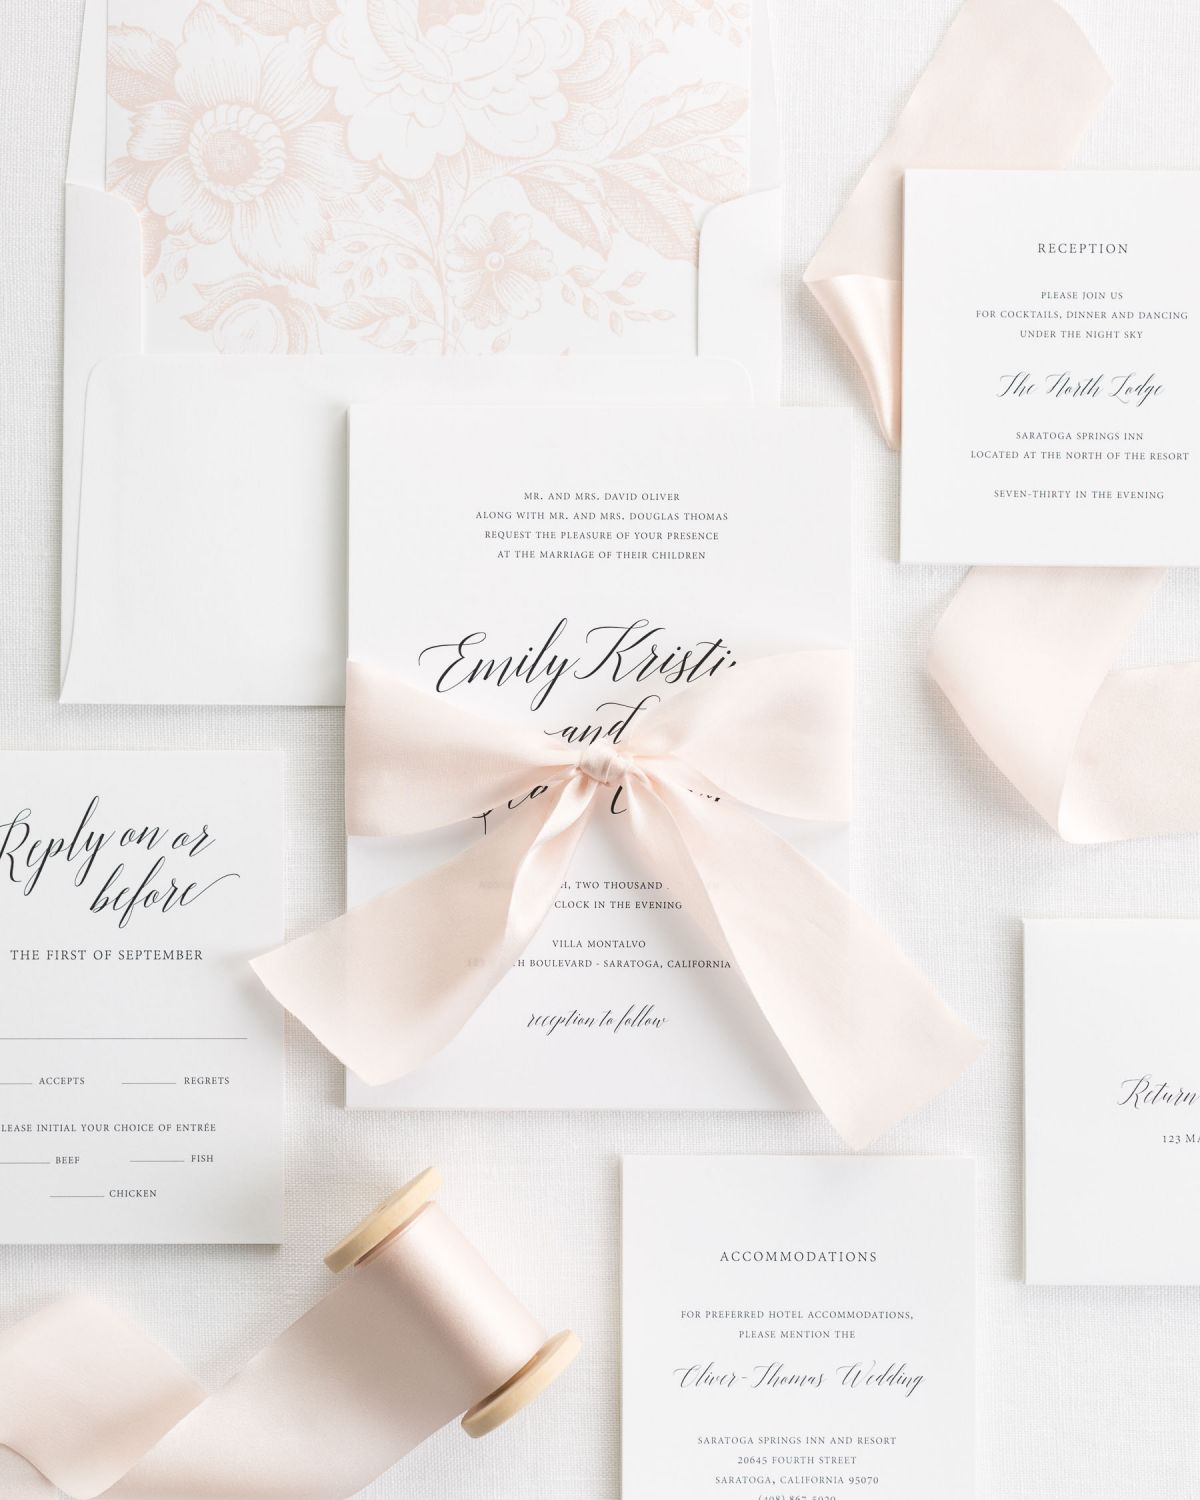 Complete Wedding Invitation Suite with Pale Pink Riboon and Enclosures